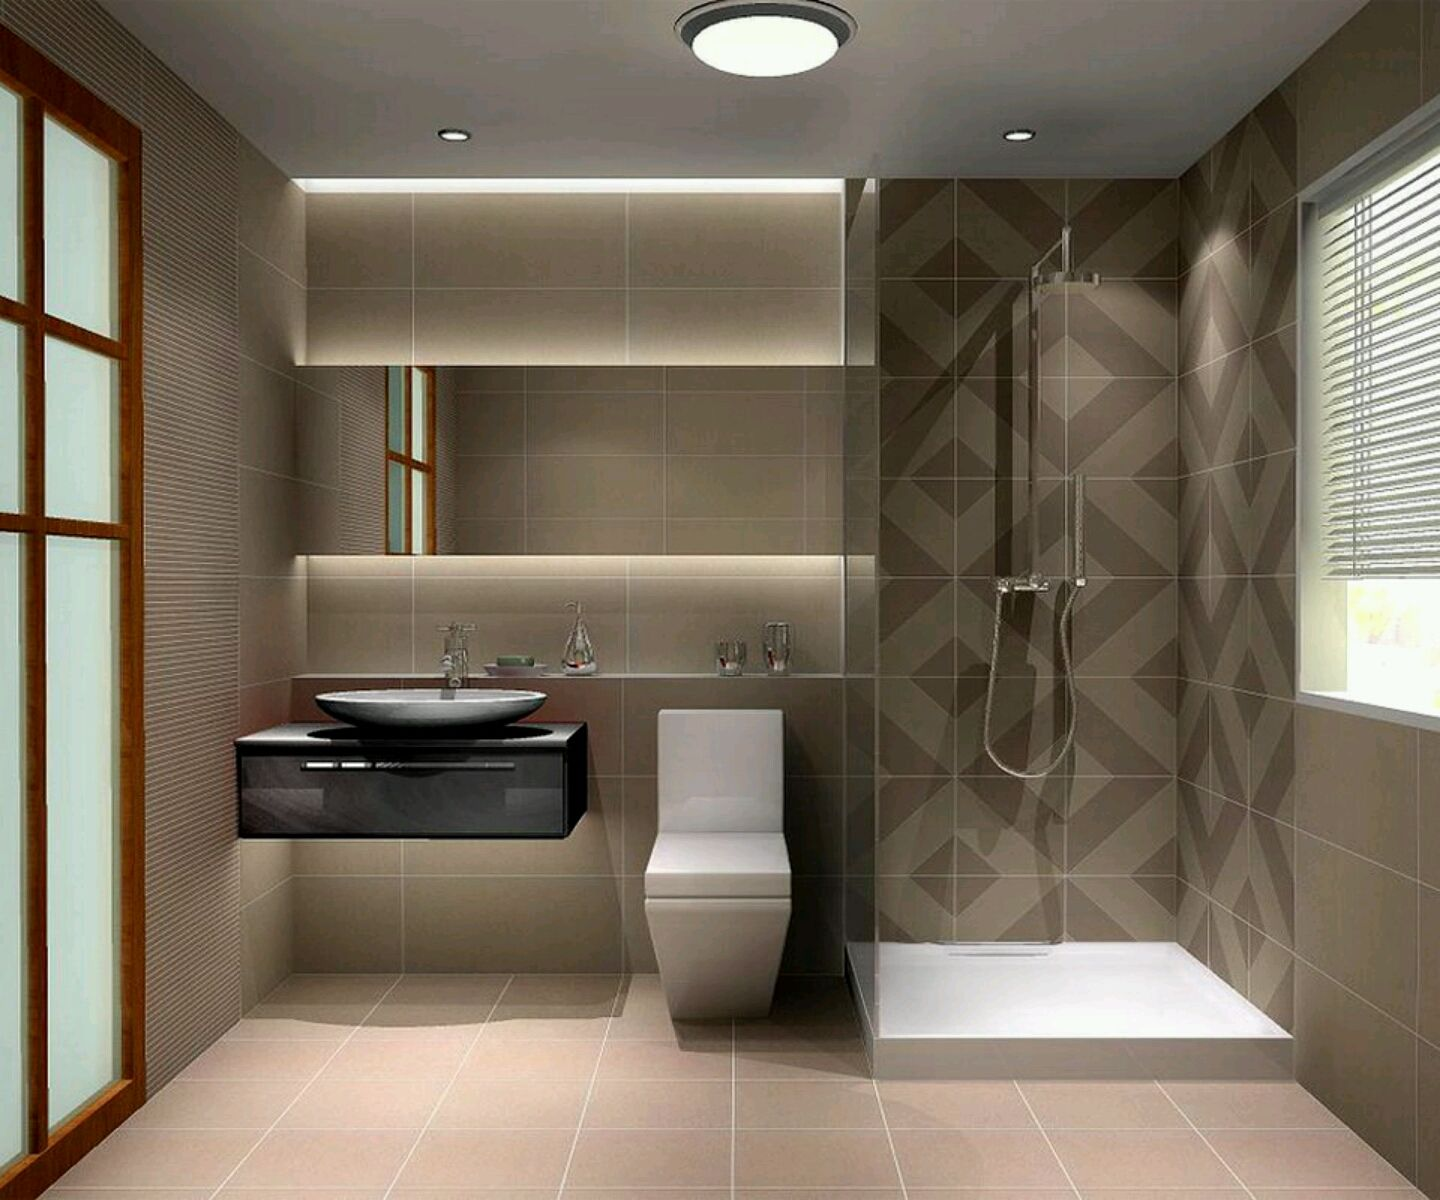 Prime Modern Simple Bathroom Designs Inspire Largest Home Design Picture Inspirations Pitcheantrous